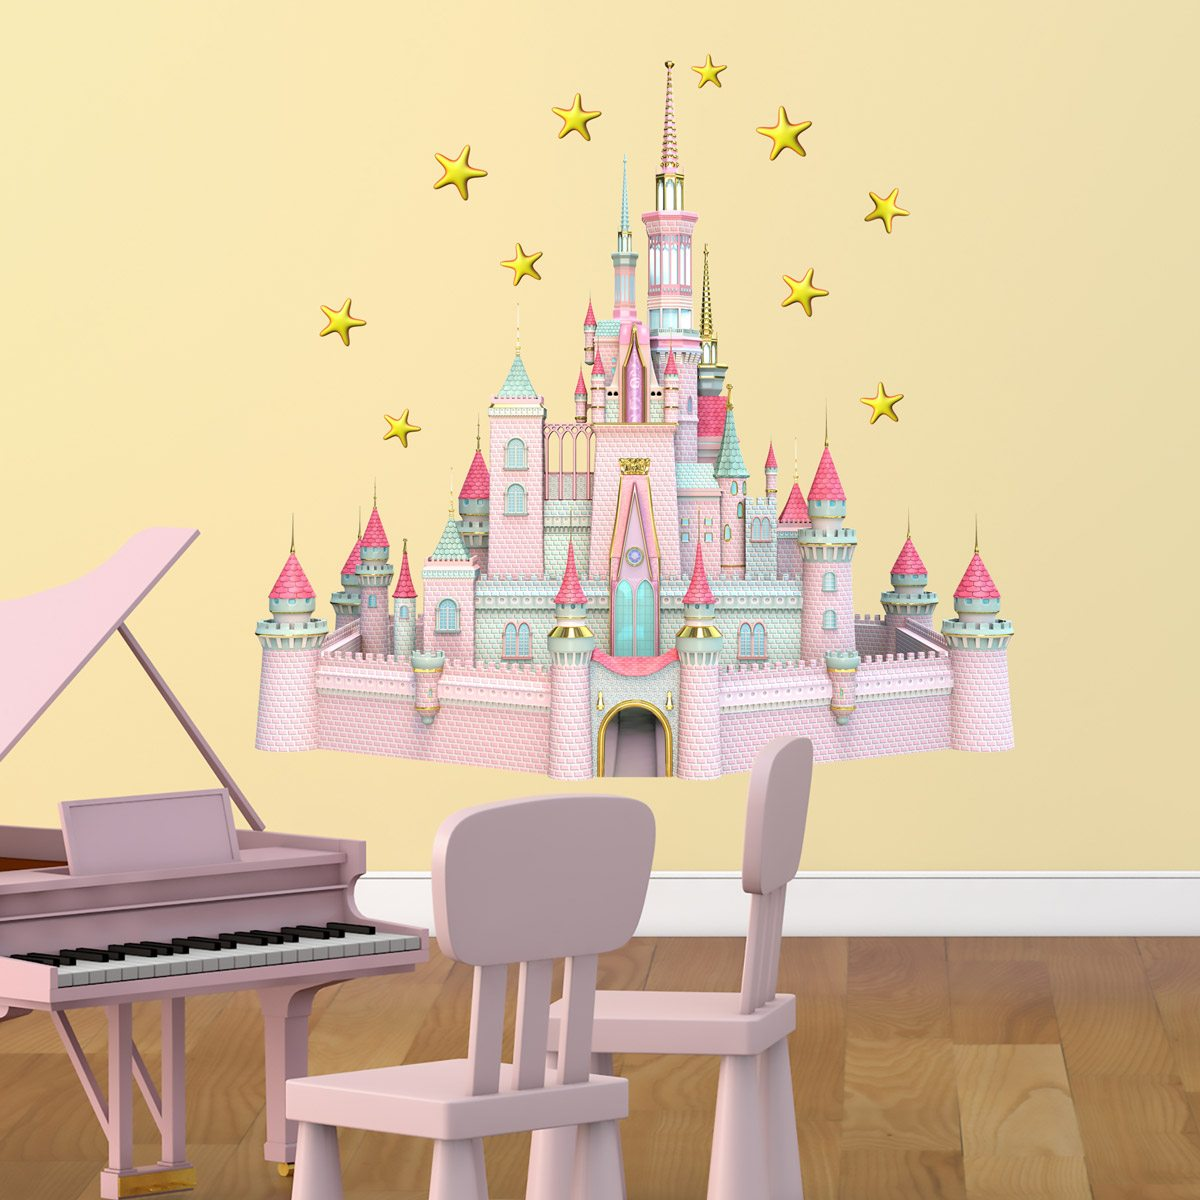 Fantastic Disney Castle Wall Art Photo - The Wall Art Decorations ...